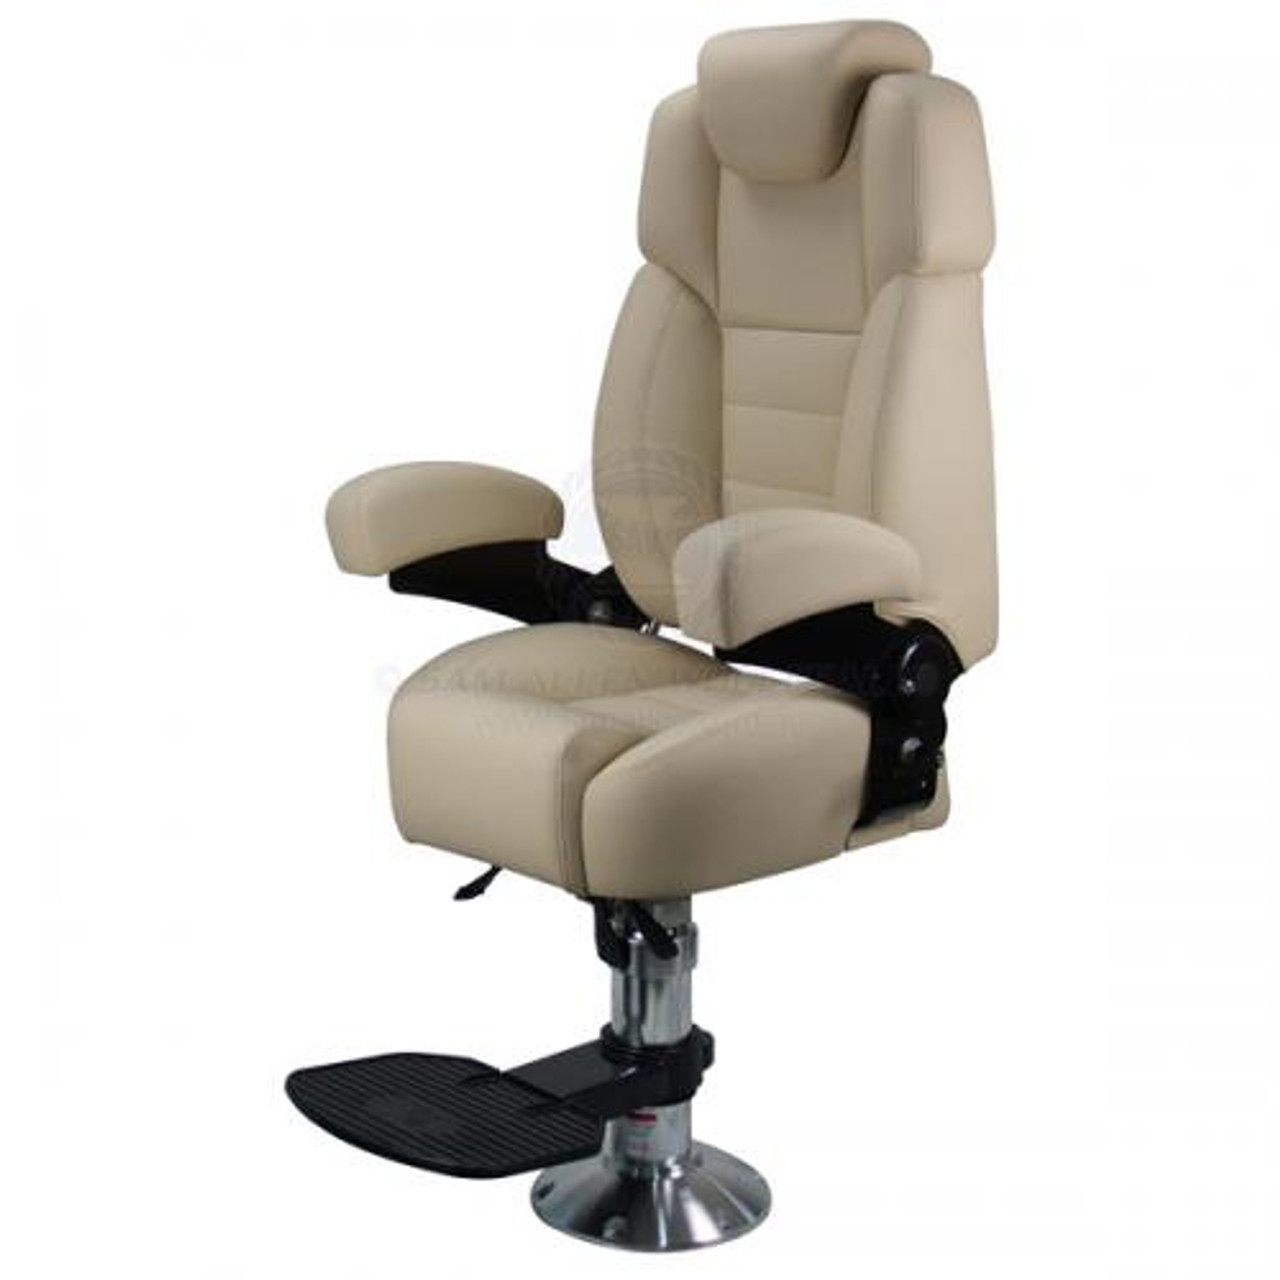 Helm Chair - Relaxn Voyager Seat with Pedestal - Beige